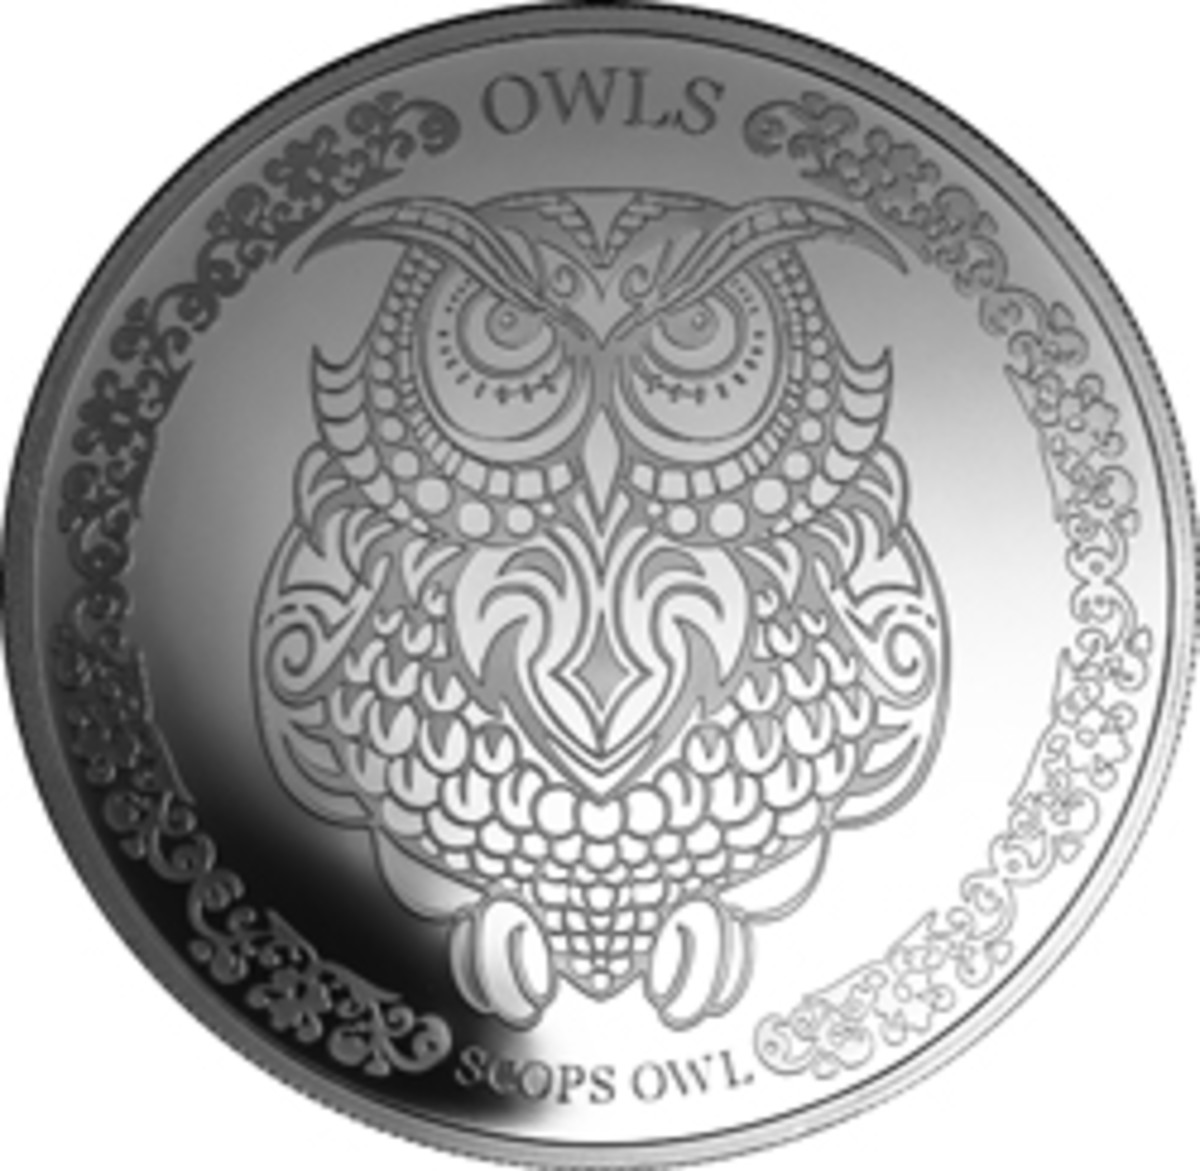 Reverse view of Tokelaun silver $5 showing the stylized Scops Owl, the first coin in a new series. (Image courtesy Treasures of Oz)